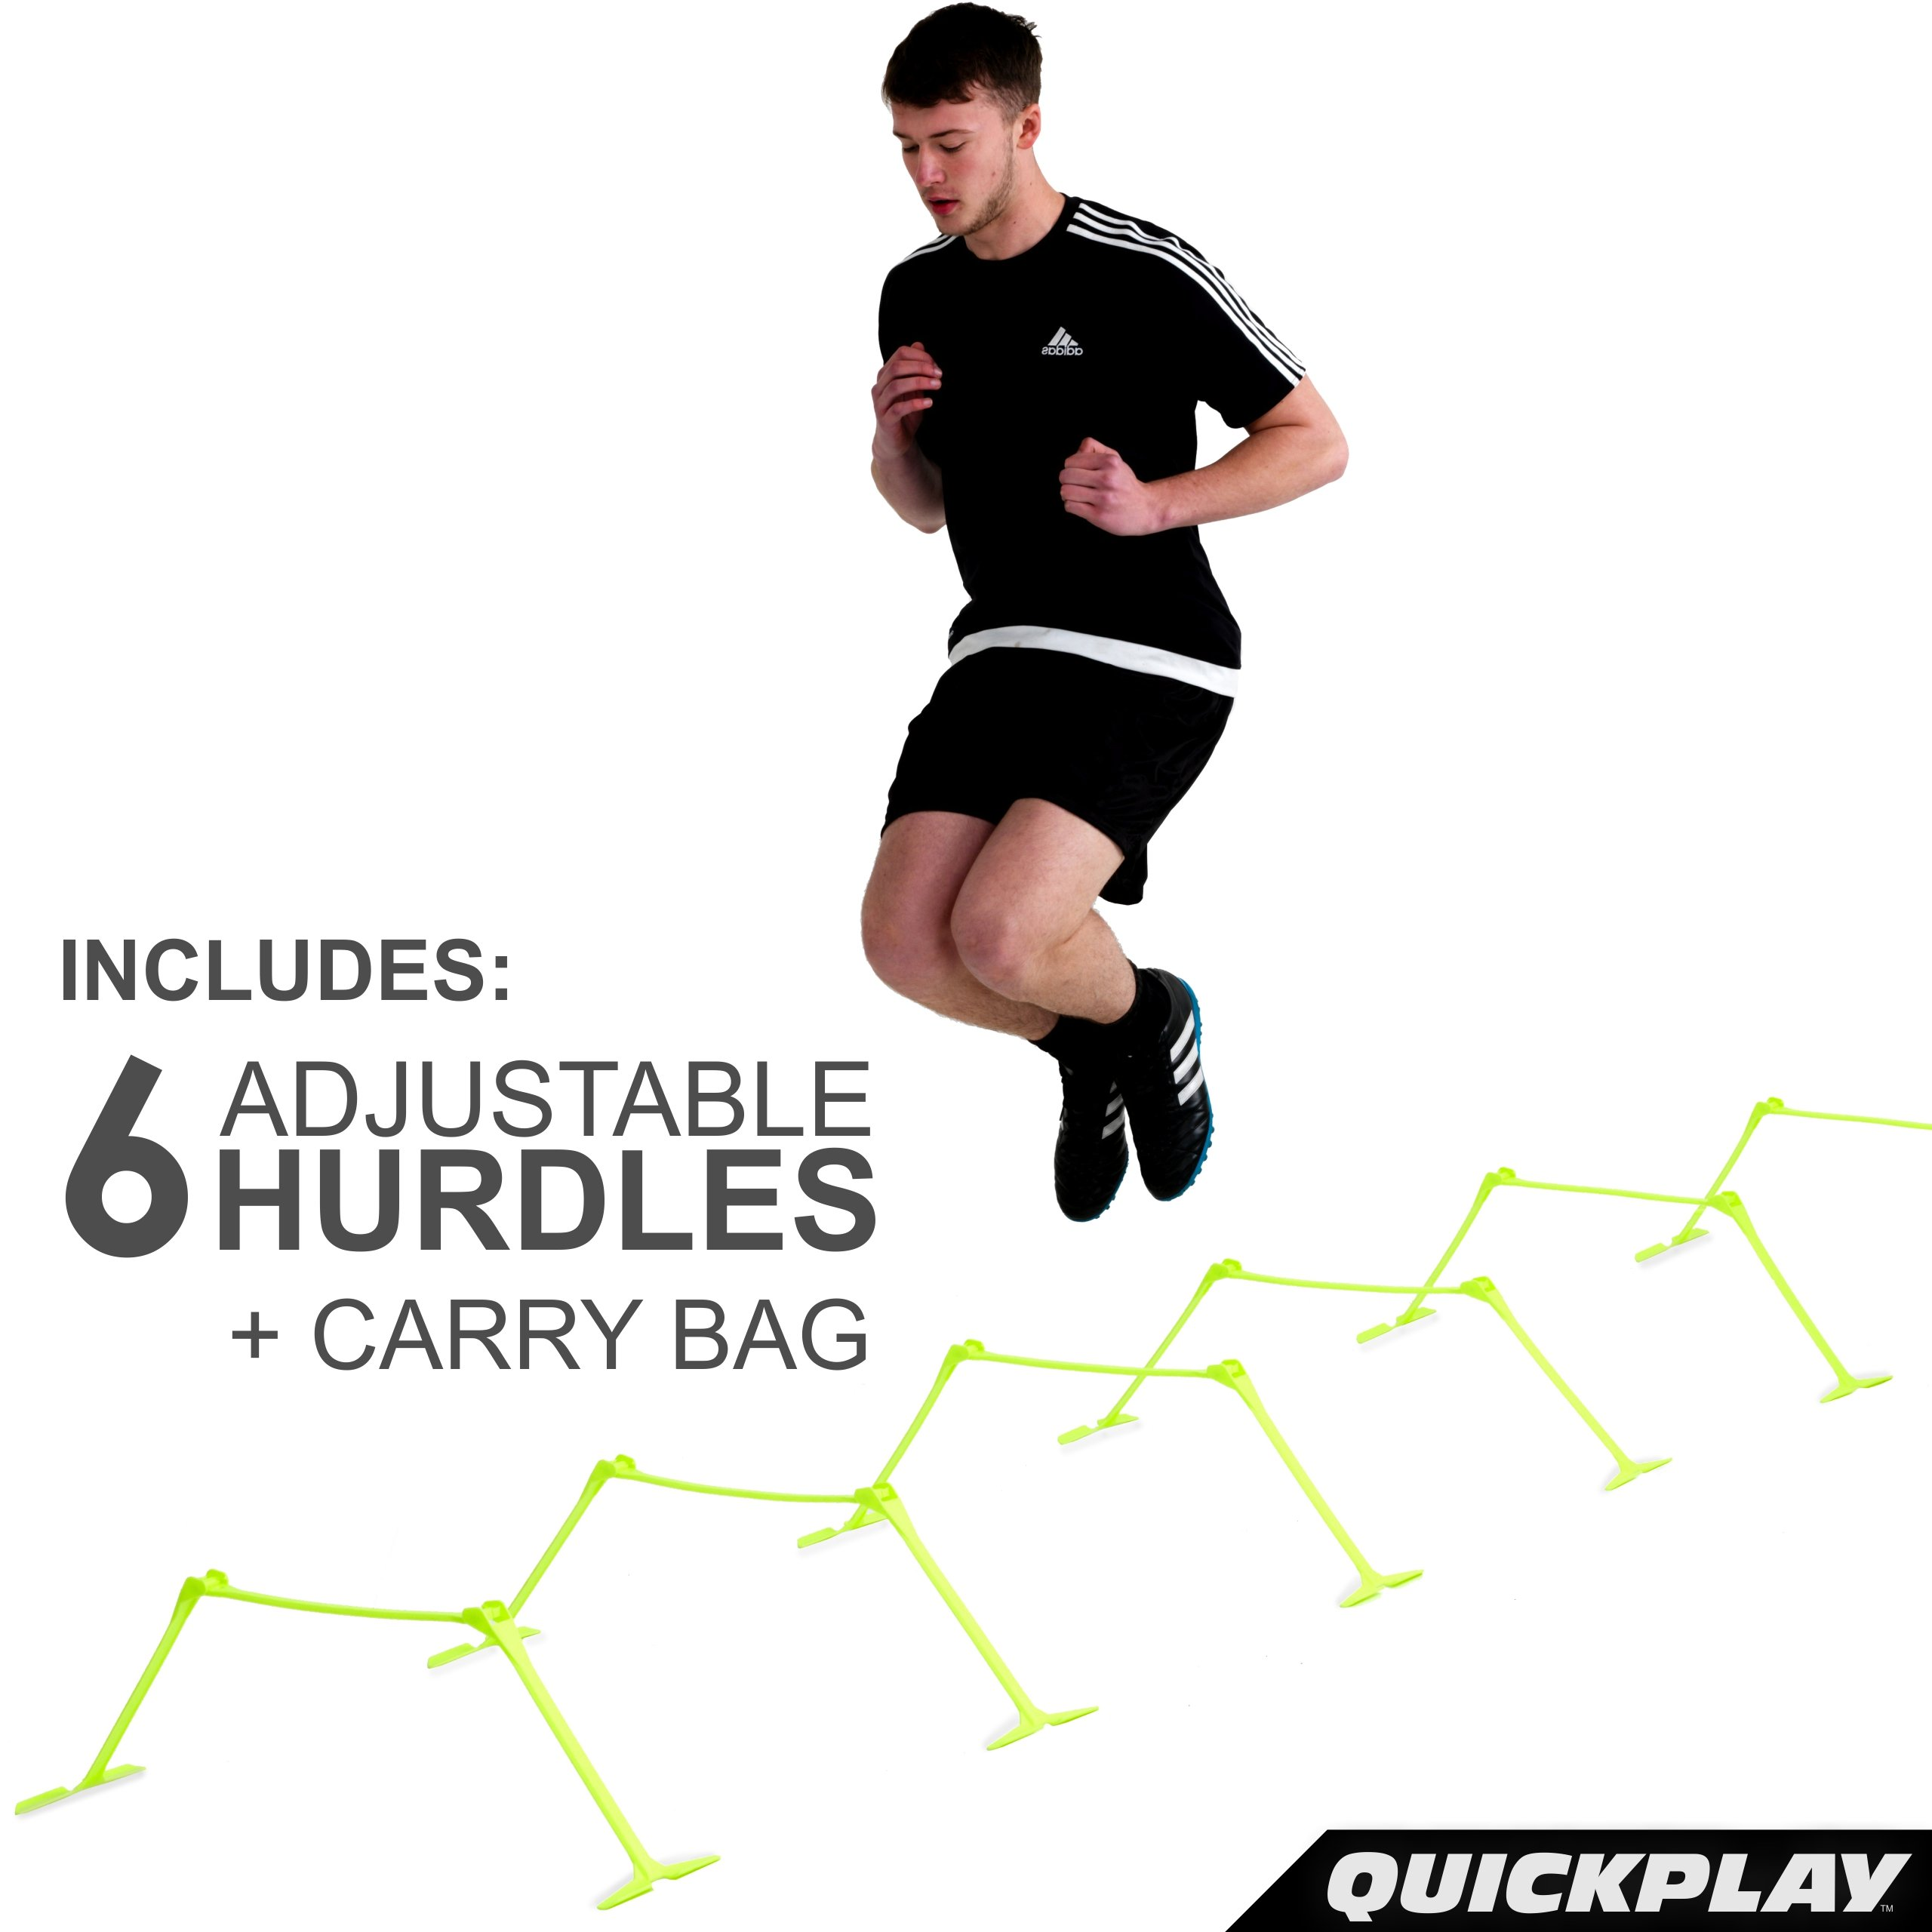 QuickPlay PRO Adjustable Height: 6'', 9'' + 12'' All-in-One Speed Hurdles (Set of 6) Speed Training Hurdles, Agility Hurdles and Plyometric Hurdles by QuickPlay (Image #3)